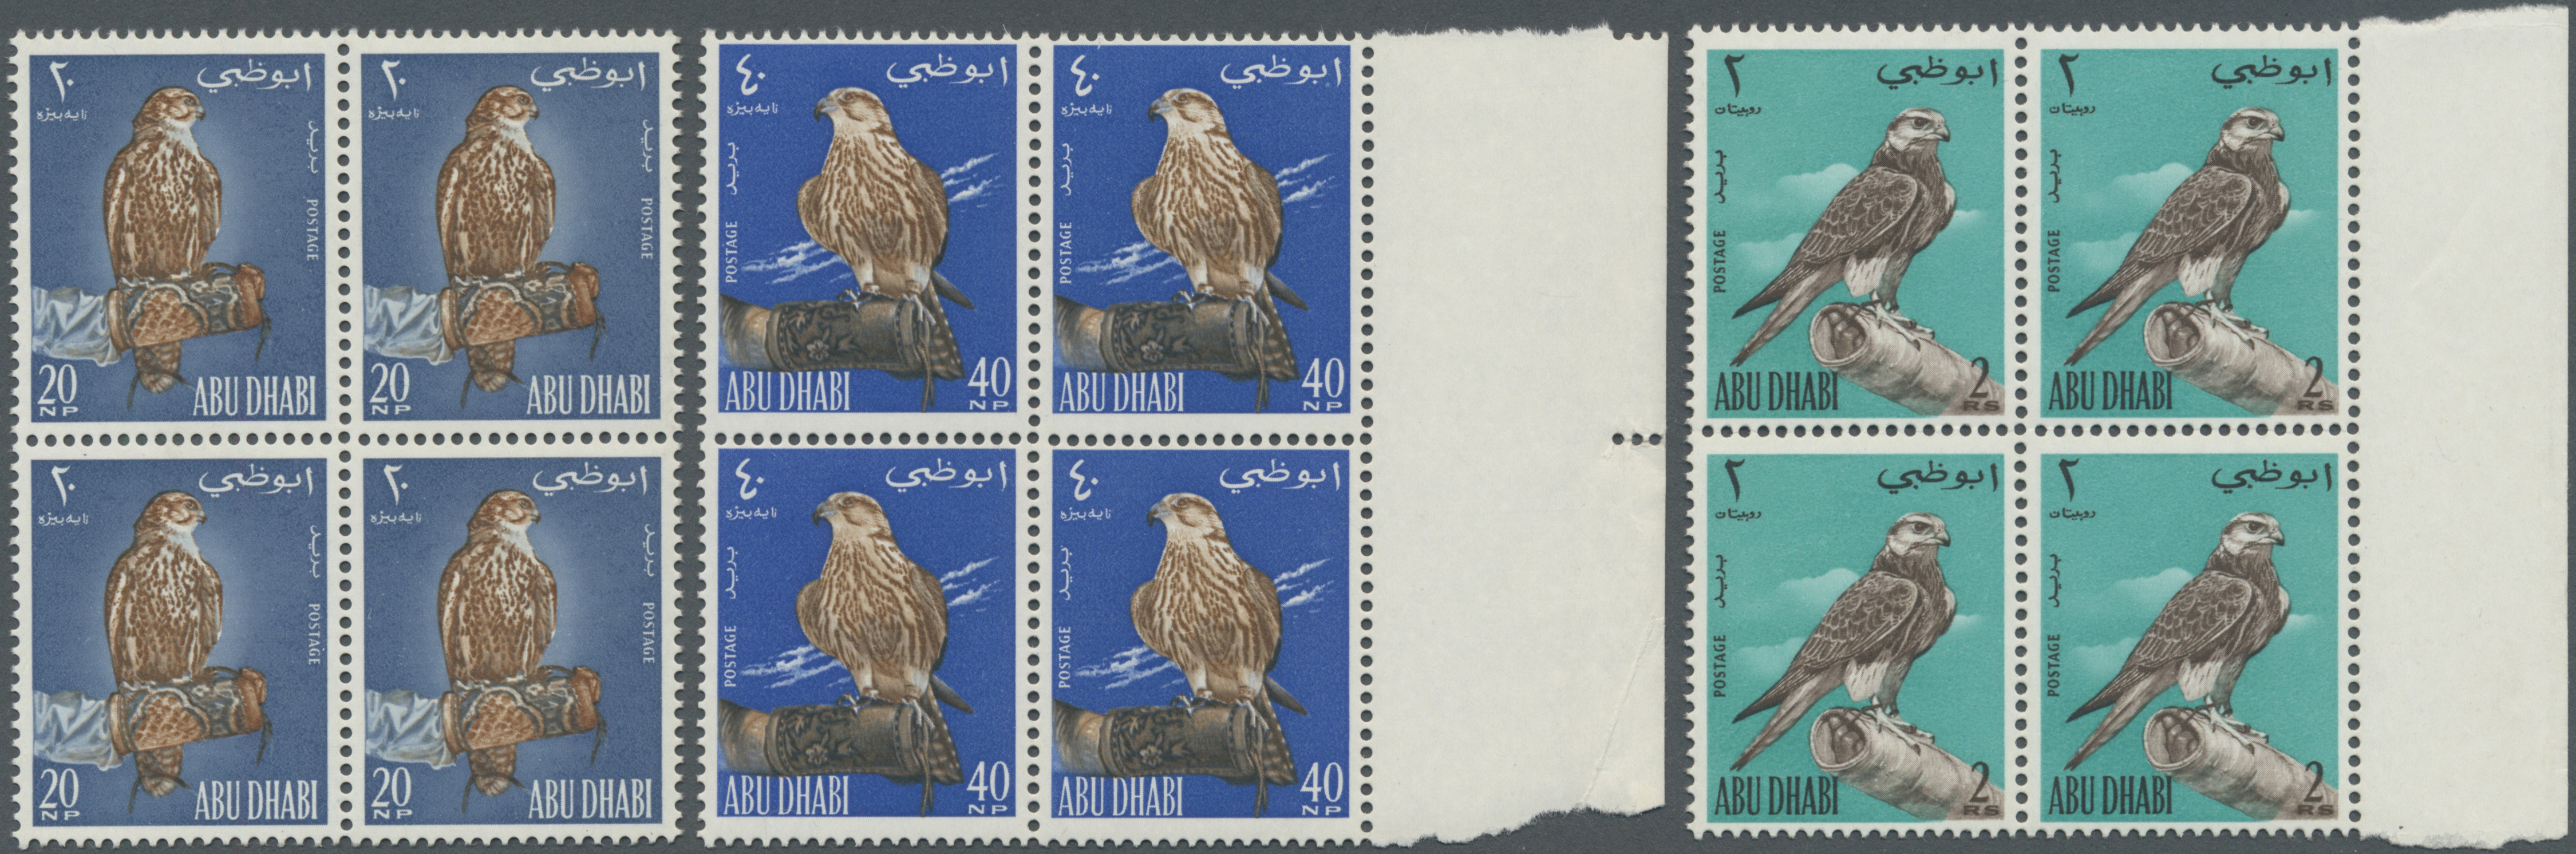 Lot 5000 - Abu Dhabi  -  Auktionshaus Christoph Gärtner GmbH & Co. KG Philately: ASIA single lots including Special Catalog Malaya Auction #39 Day 3